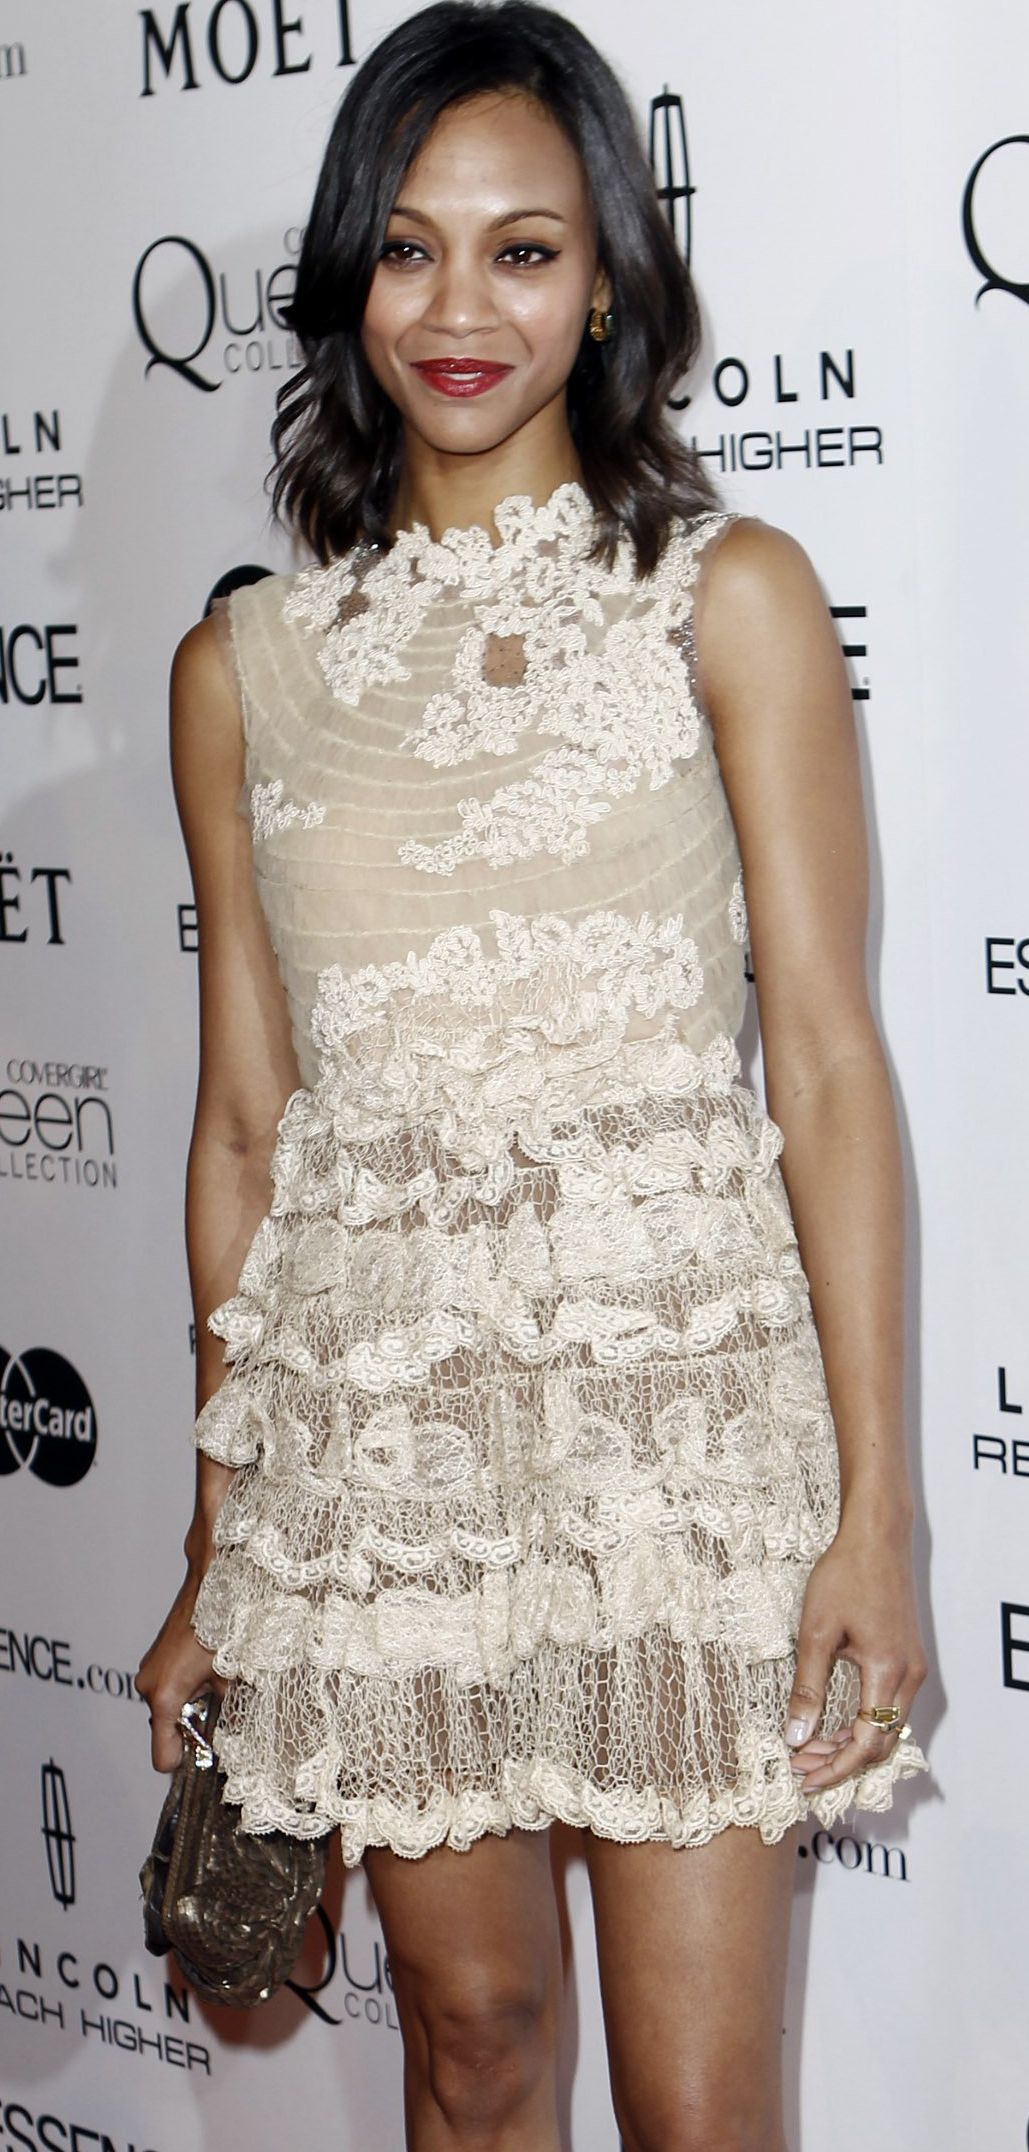 Edgy Celebrity Stackable Rings | Zoe saldana, White lace dresses and ...